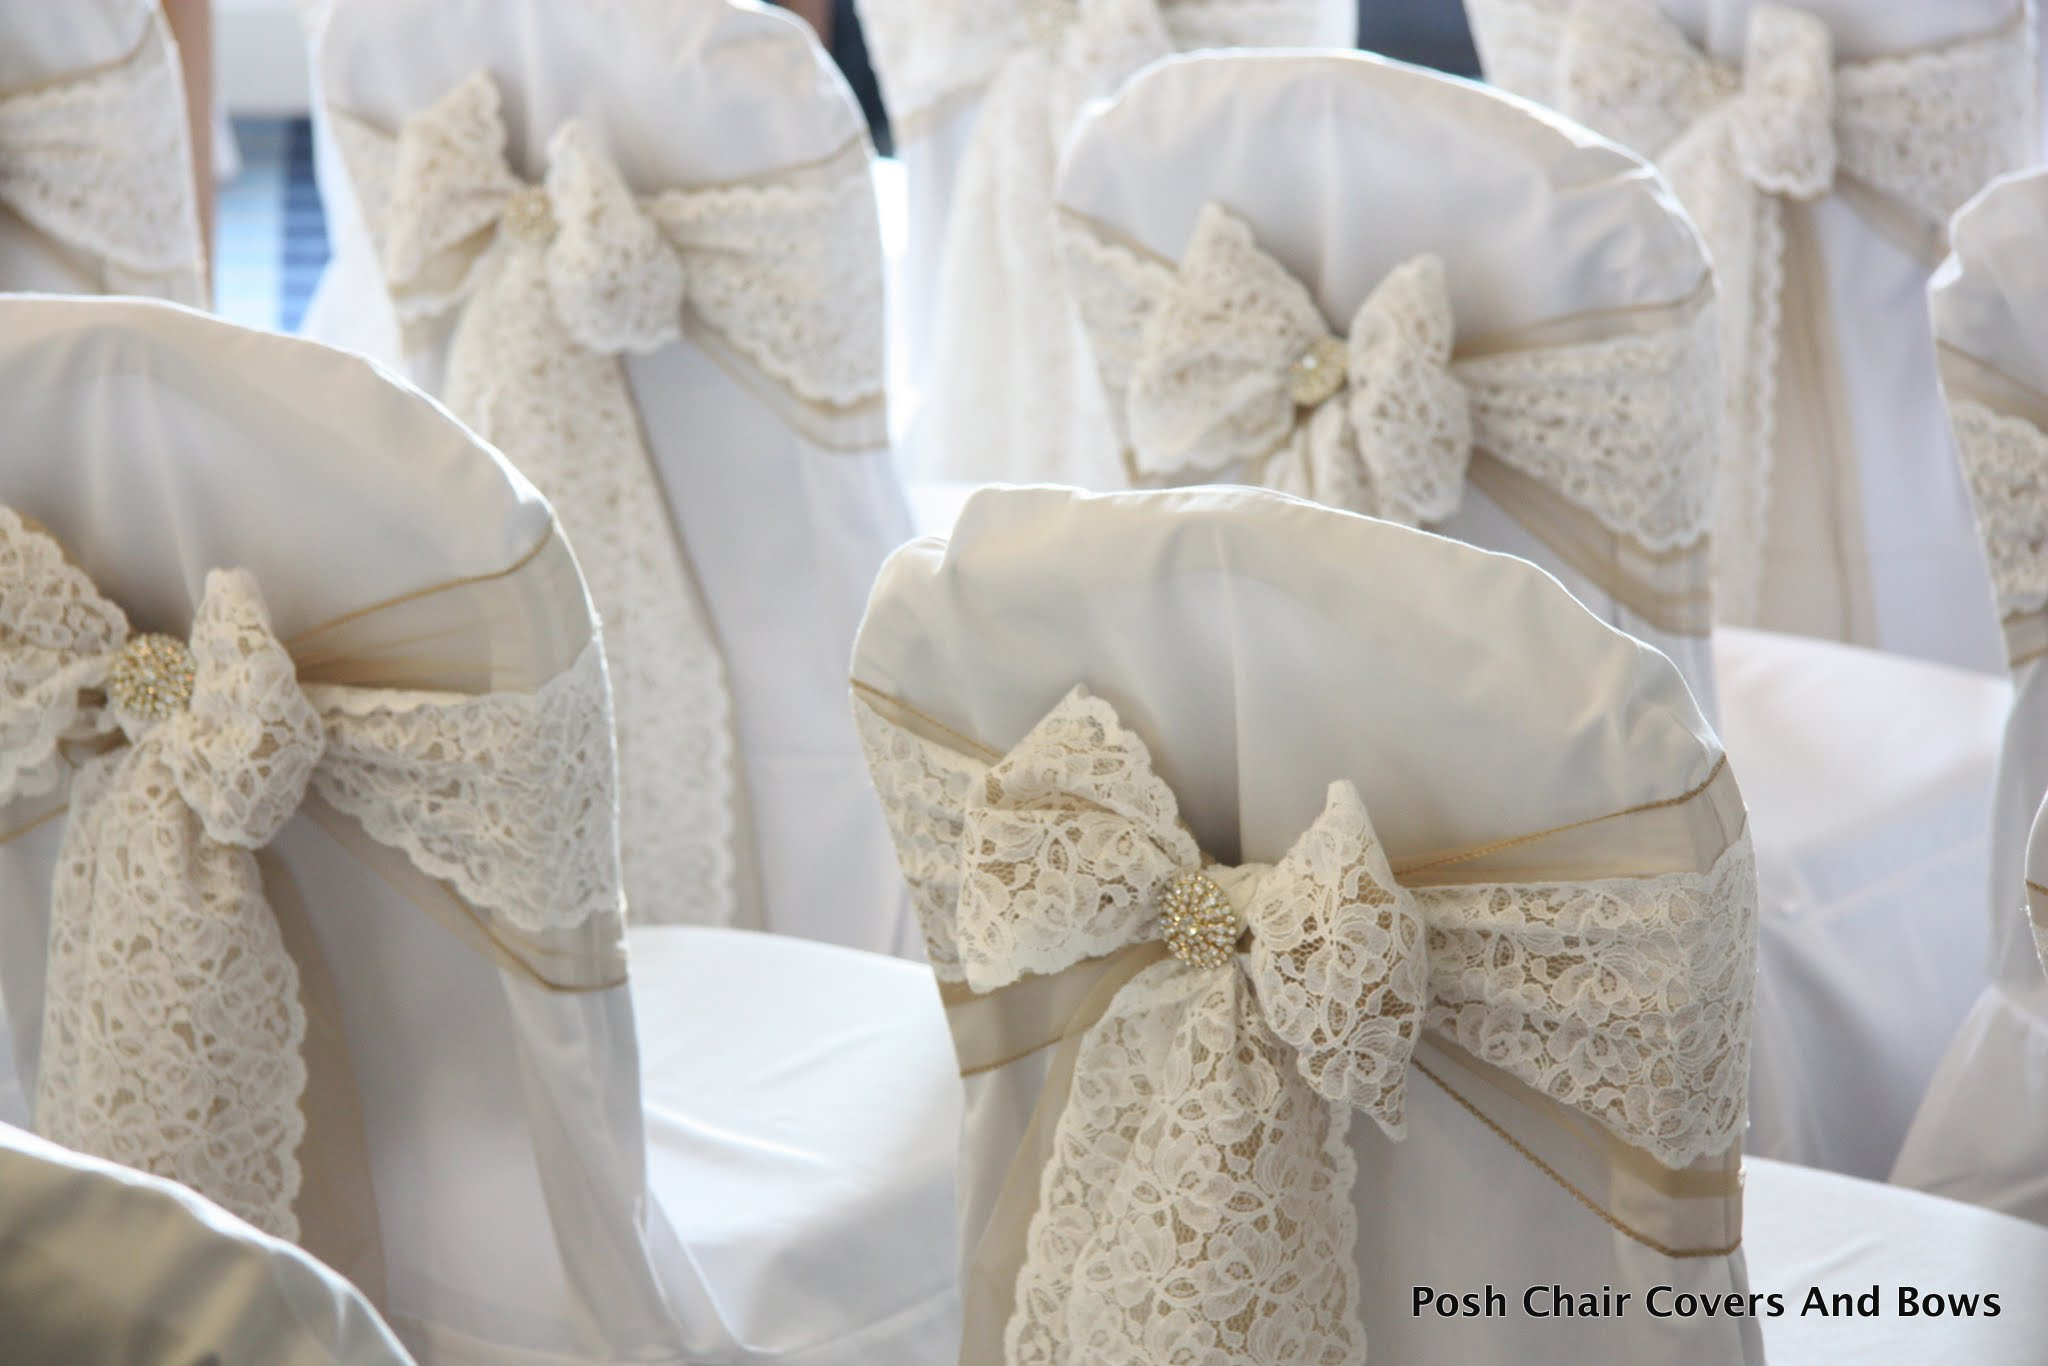 chair cover hire sunderland papasan london ontario posh covers bows chiavari chairs flower wall bowburn hall durham